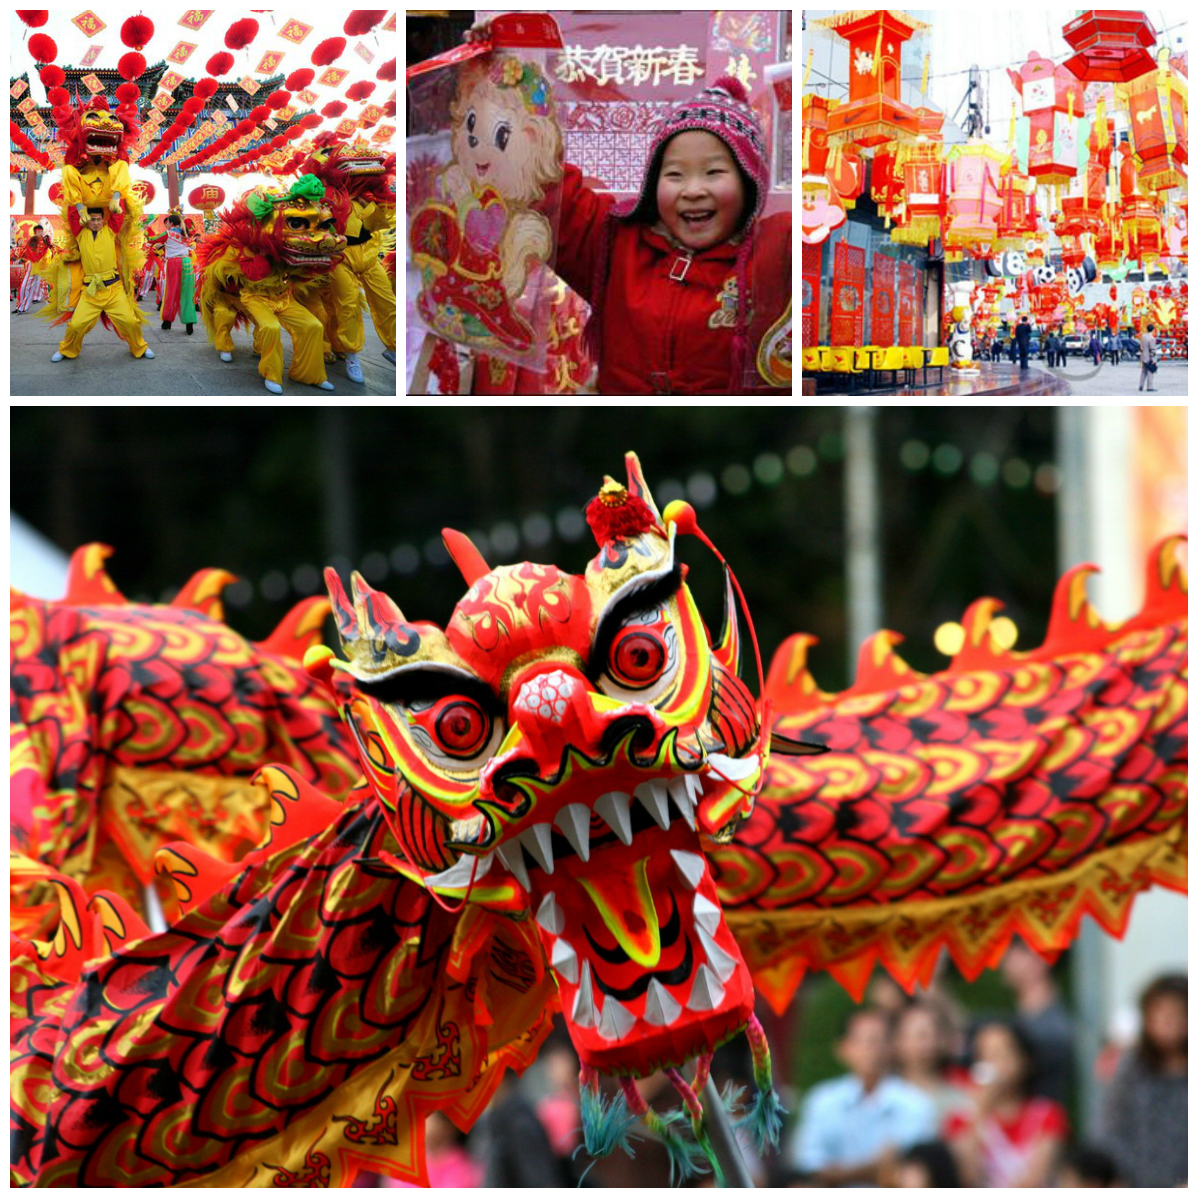 The history and tradition of celebrating the Chinese New Year